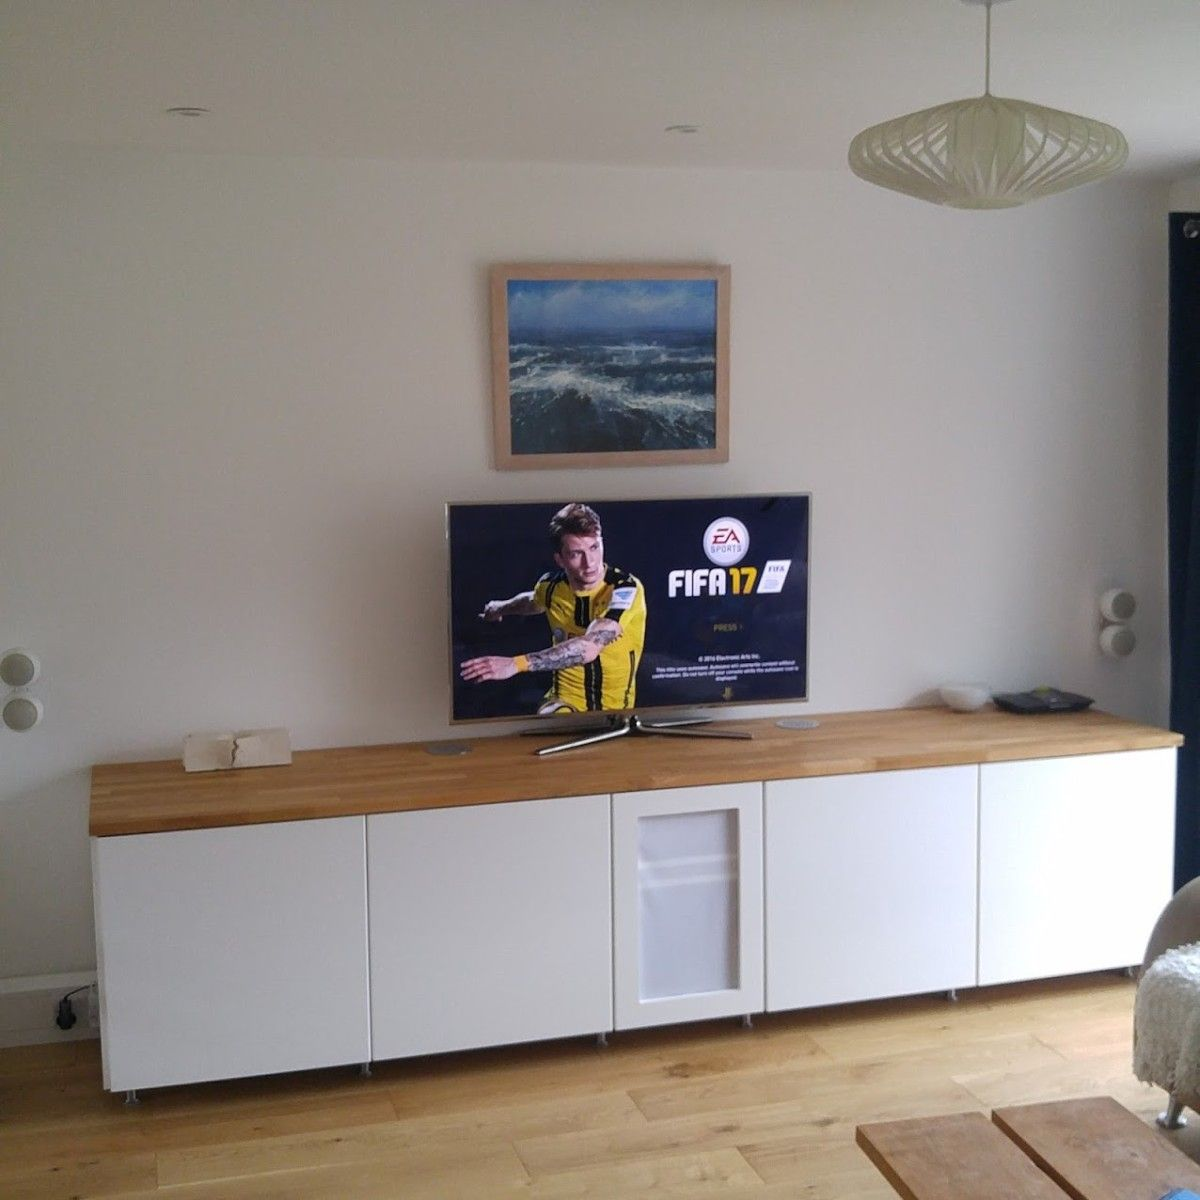 ikea metod cabinets into av unit. Black Bedroom Furniture Sets. Home Design Ideas